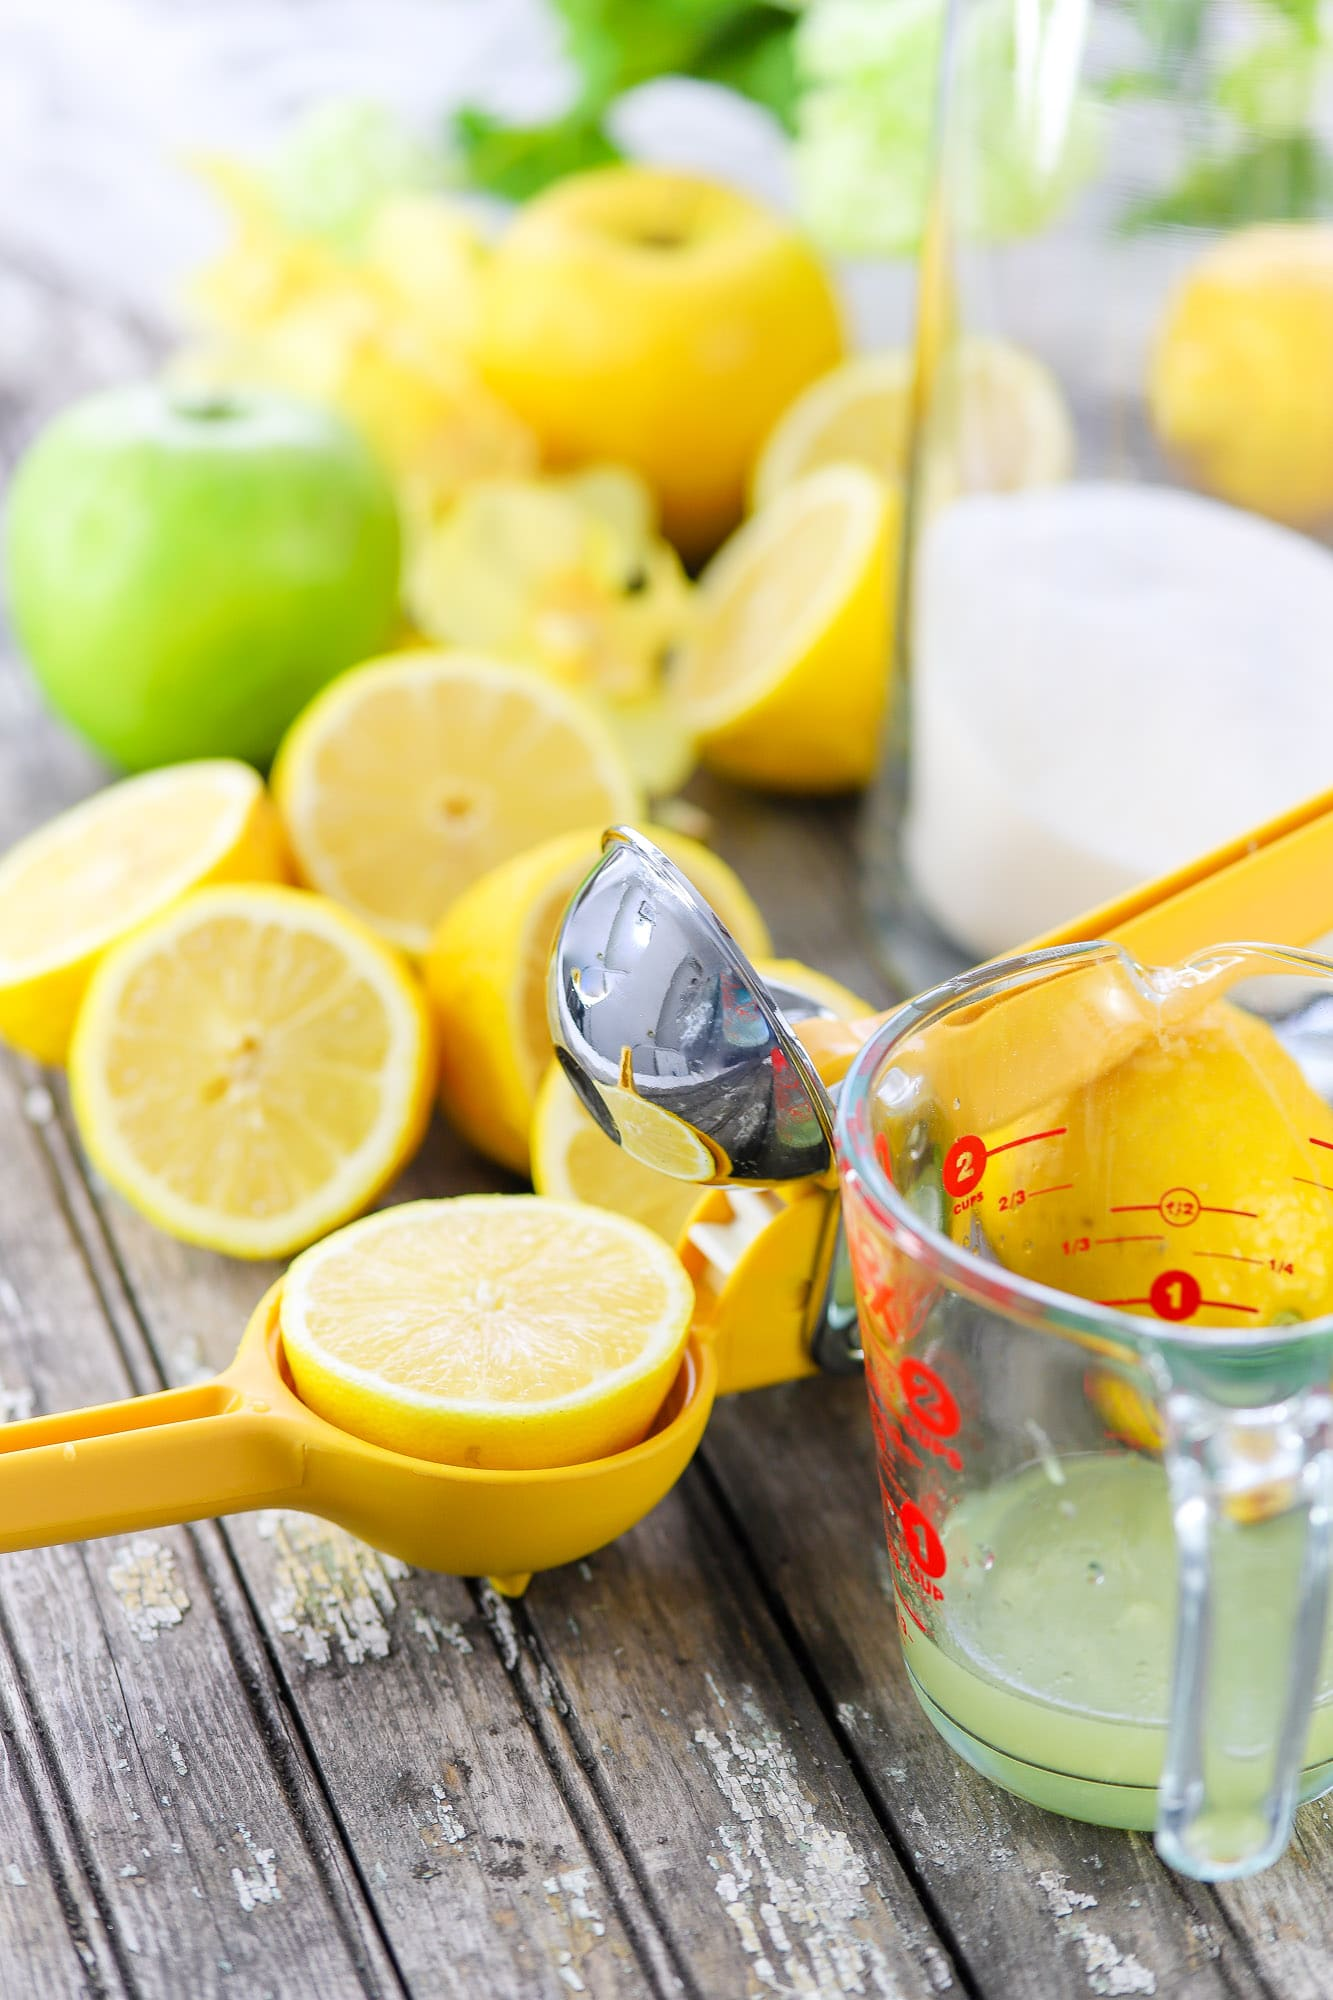 Sliced lemons in and around a citrus juicer